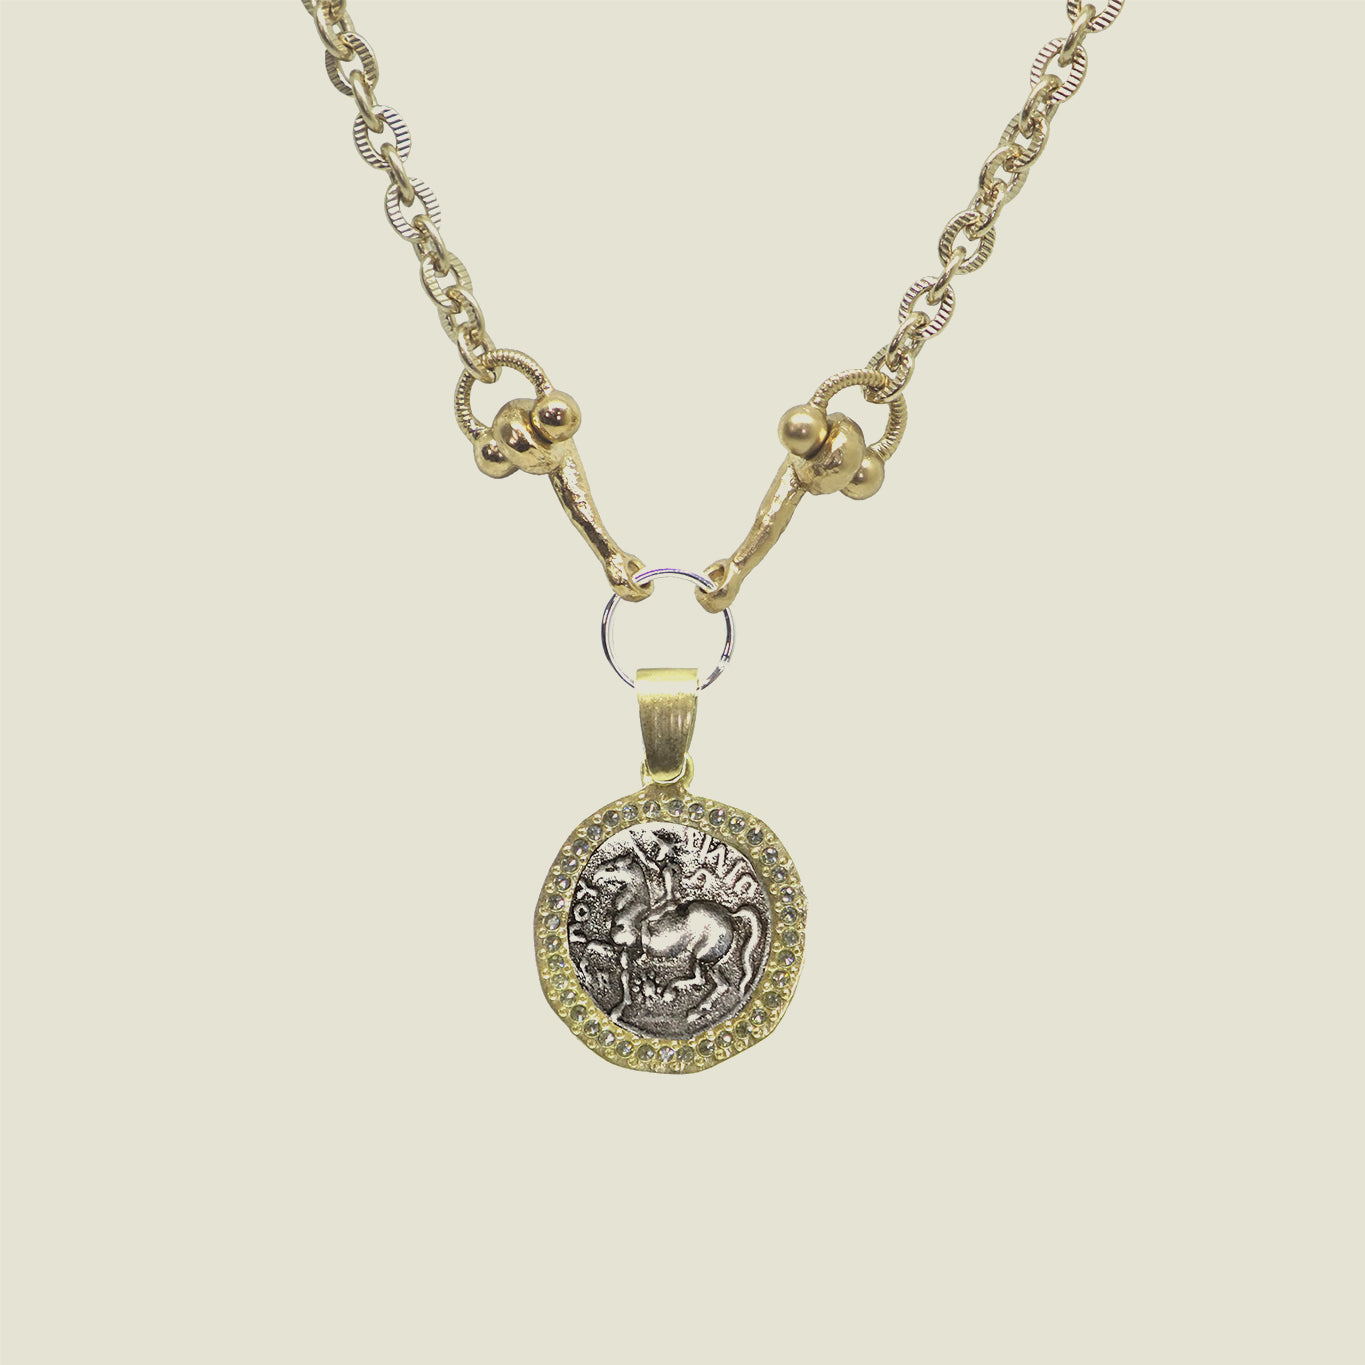 Gold Horse Crystal Horsebit Necklace - Blackbird General Store